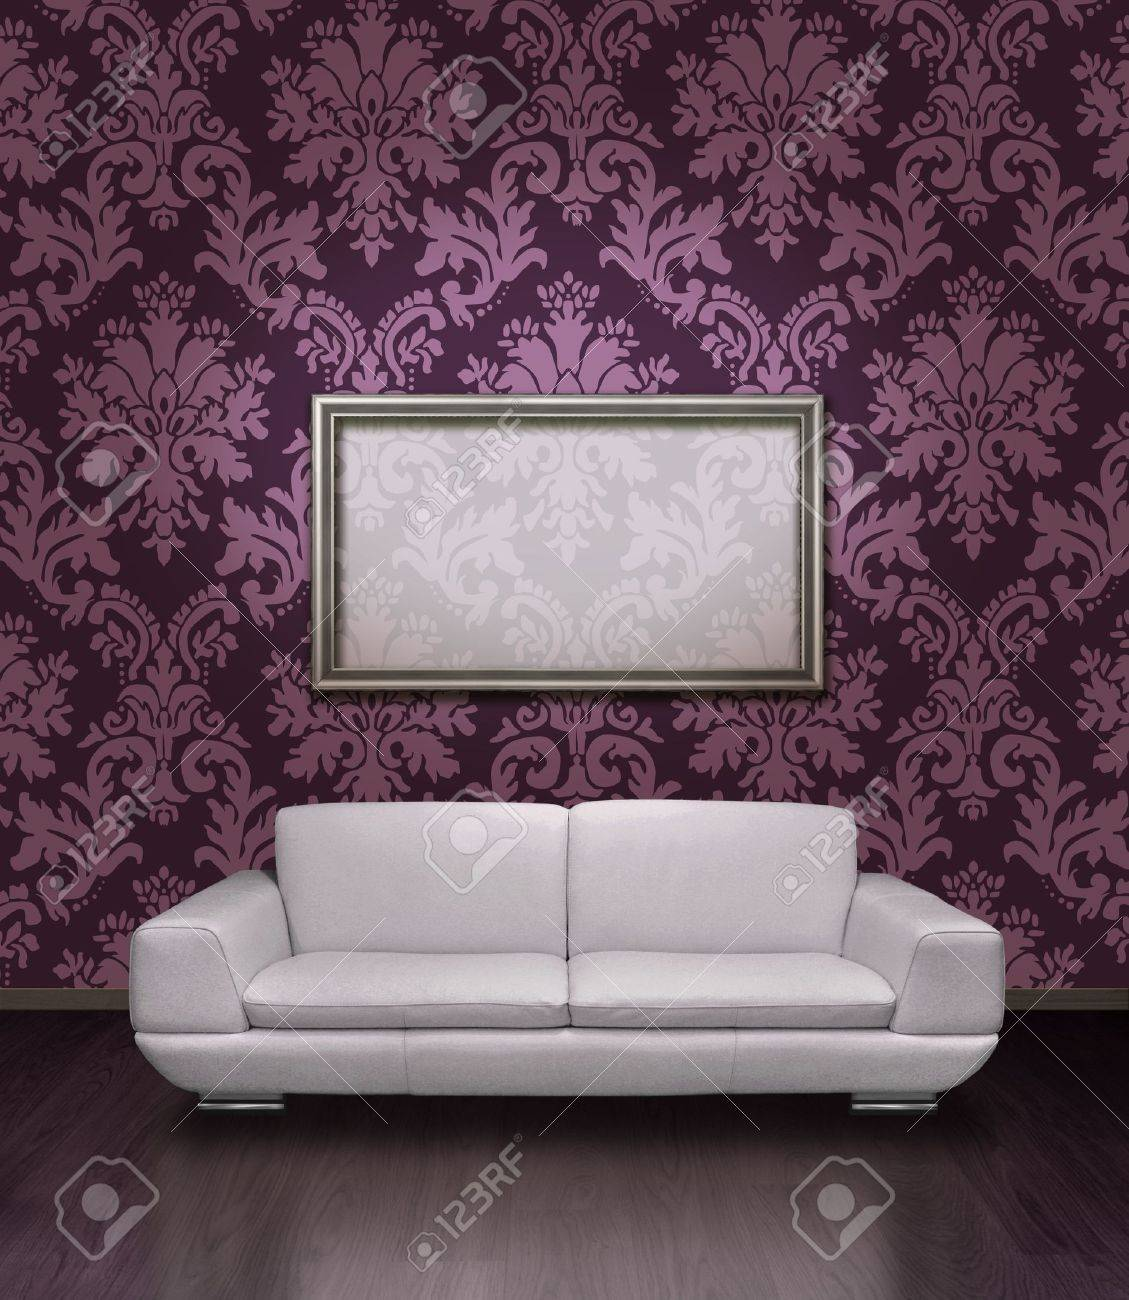 648f18d8655f Modern white leather sofa and silver plated frame in room with dark lilac  damask pattern wall